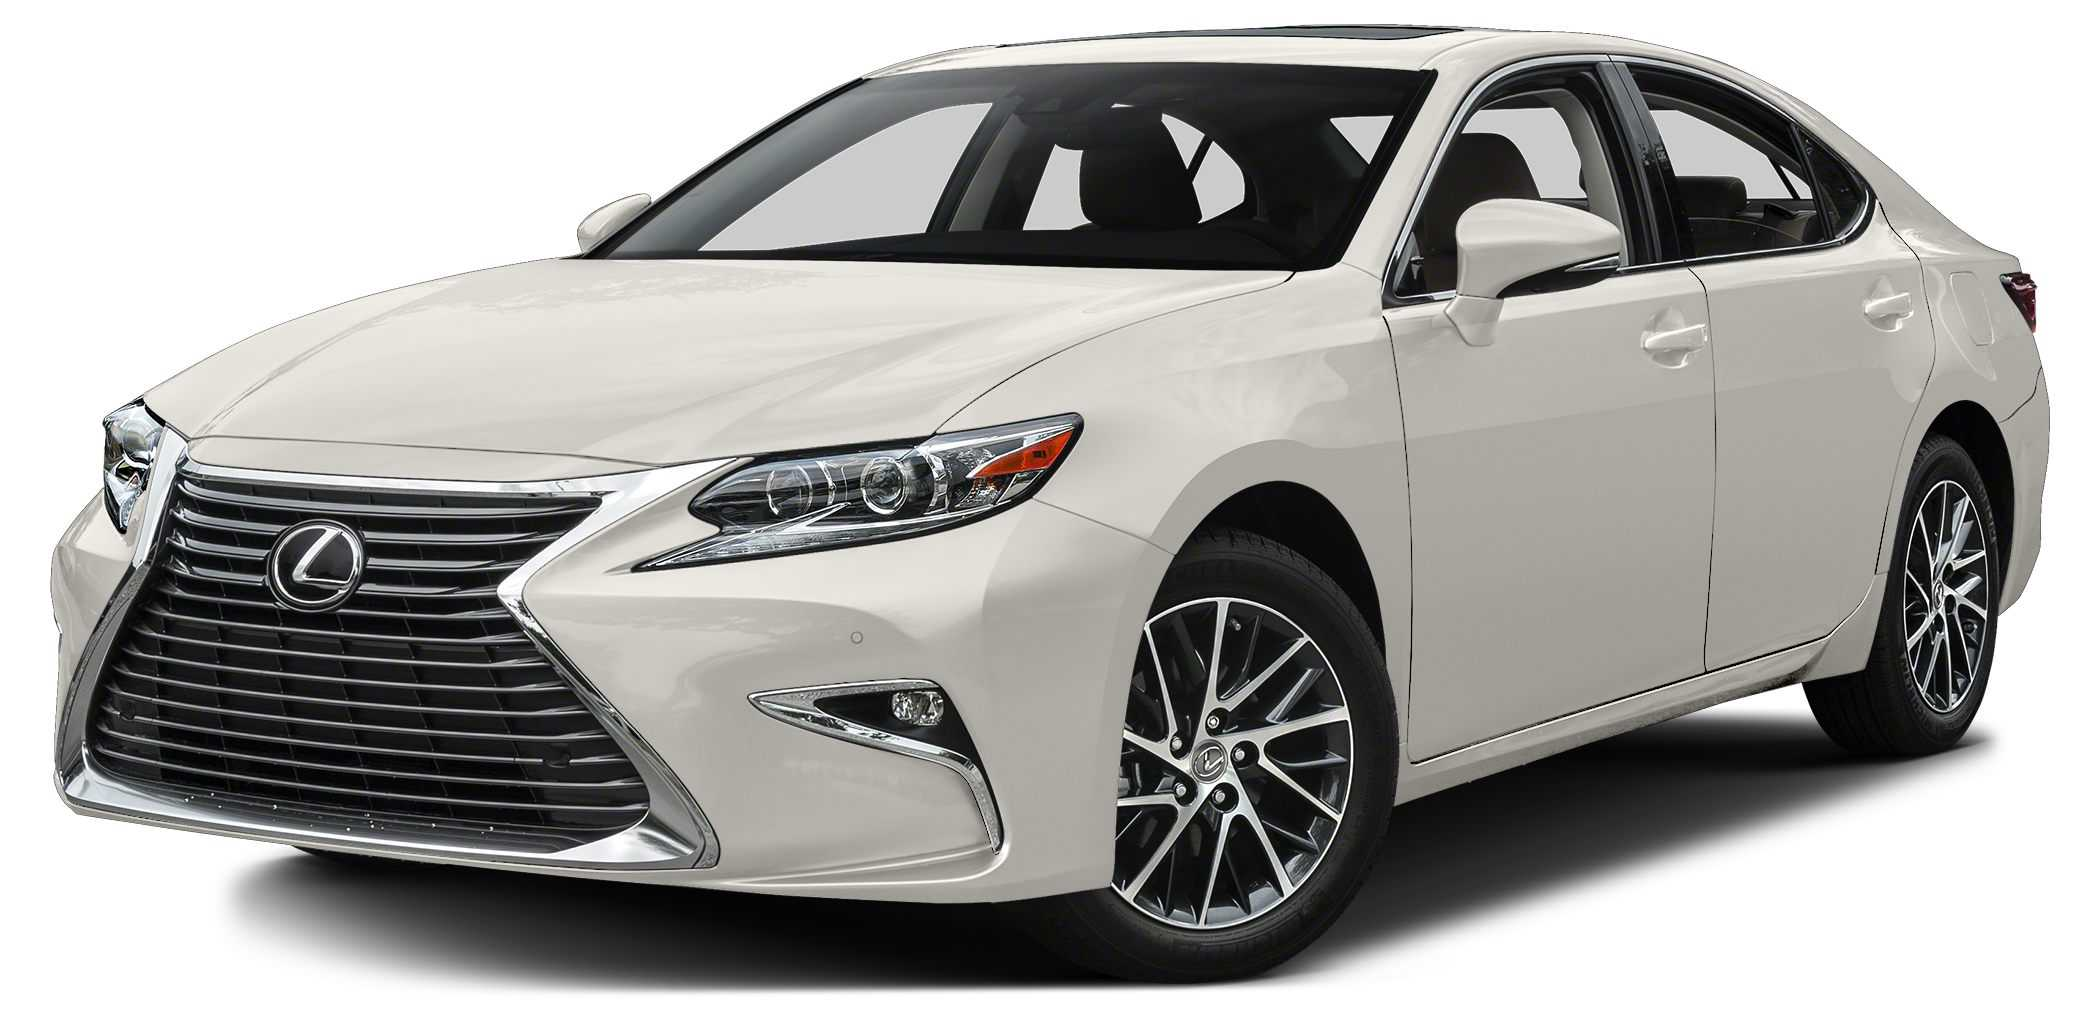 2017 LEXUS ES 350 for Sale in Chattanooga TN